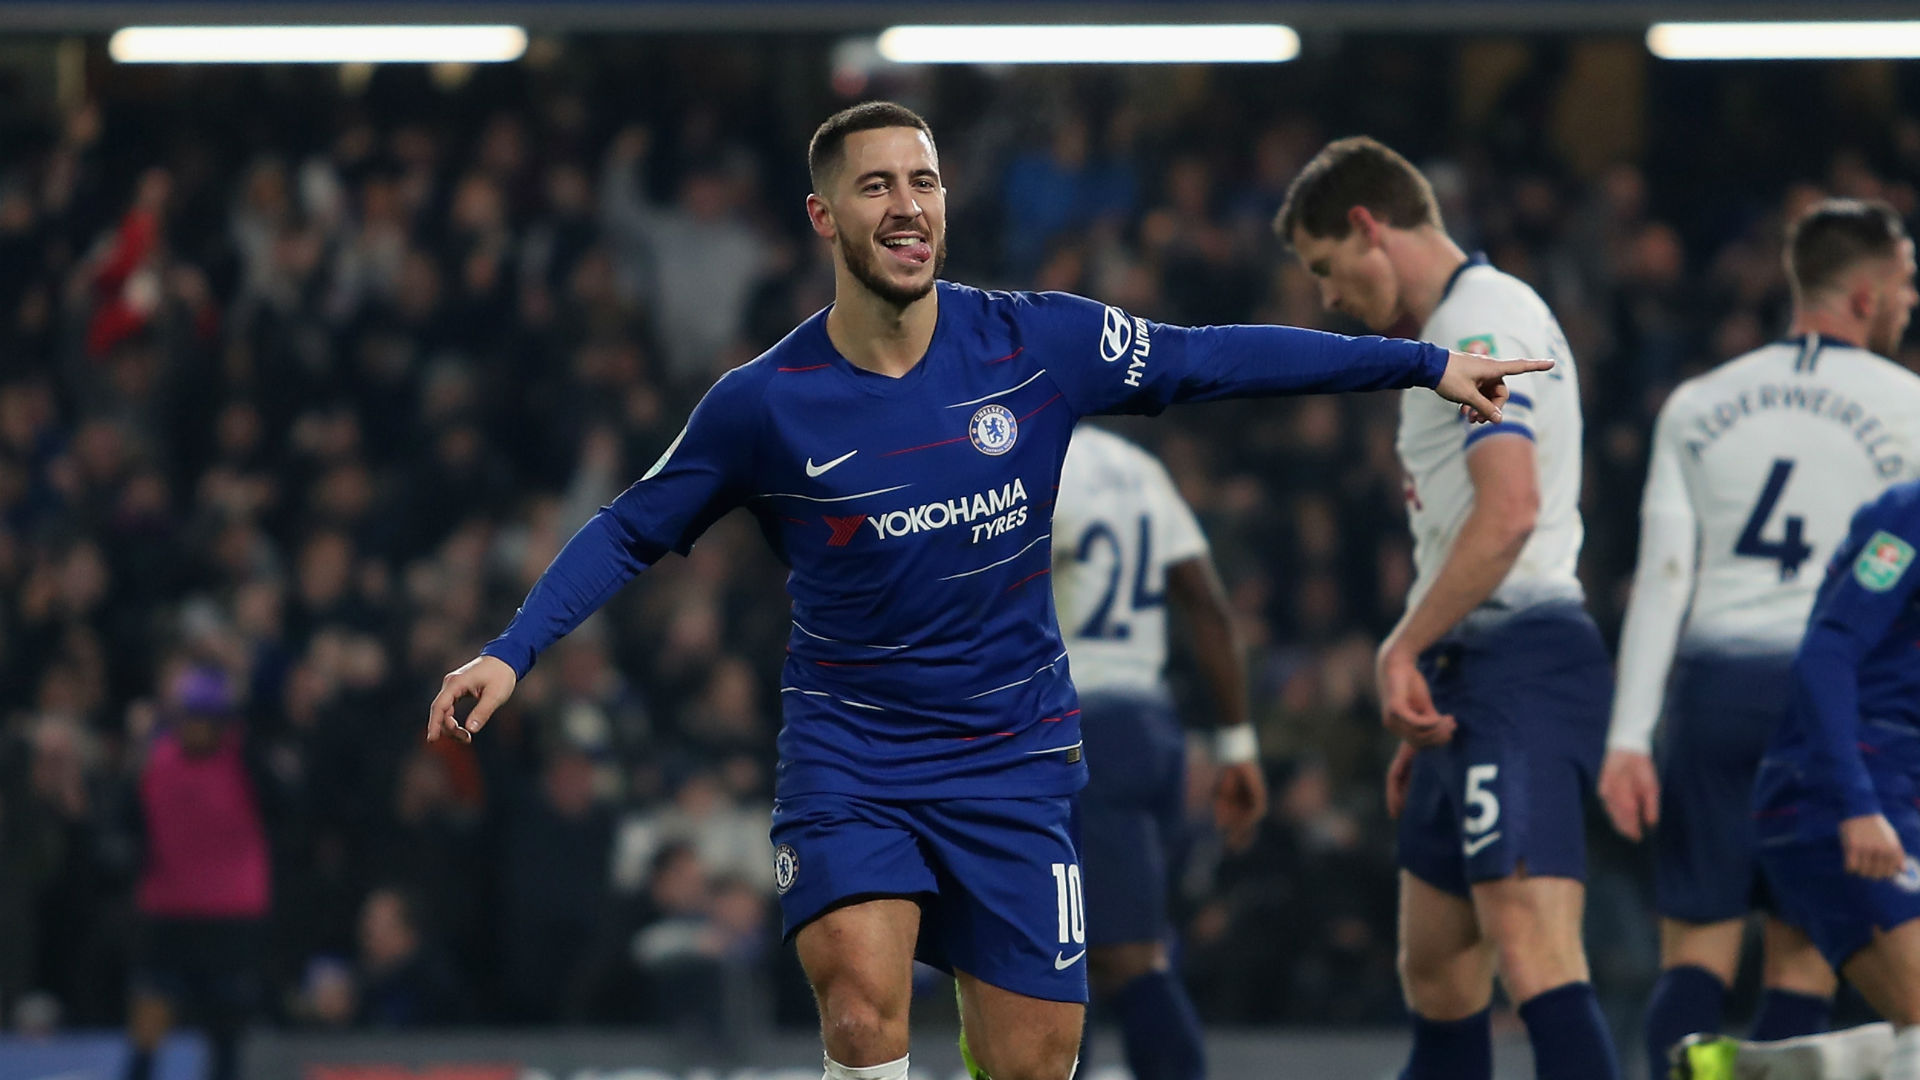 Chelsea reach Carabao Cup final: 'I don't care' - Hazard on Sarri criticism